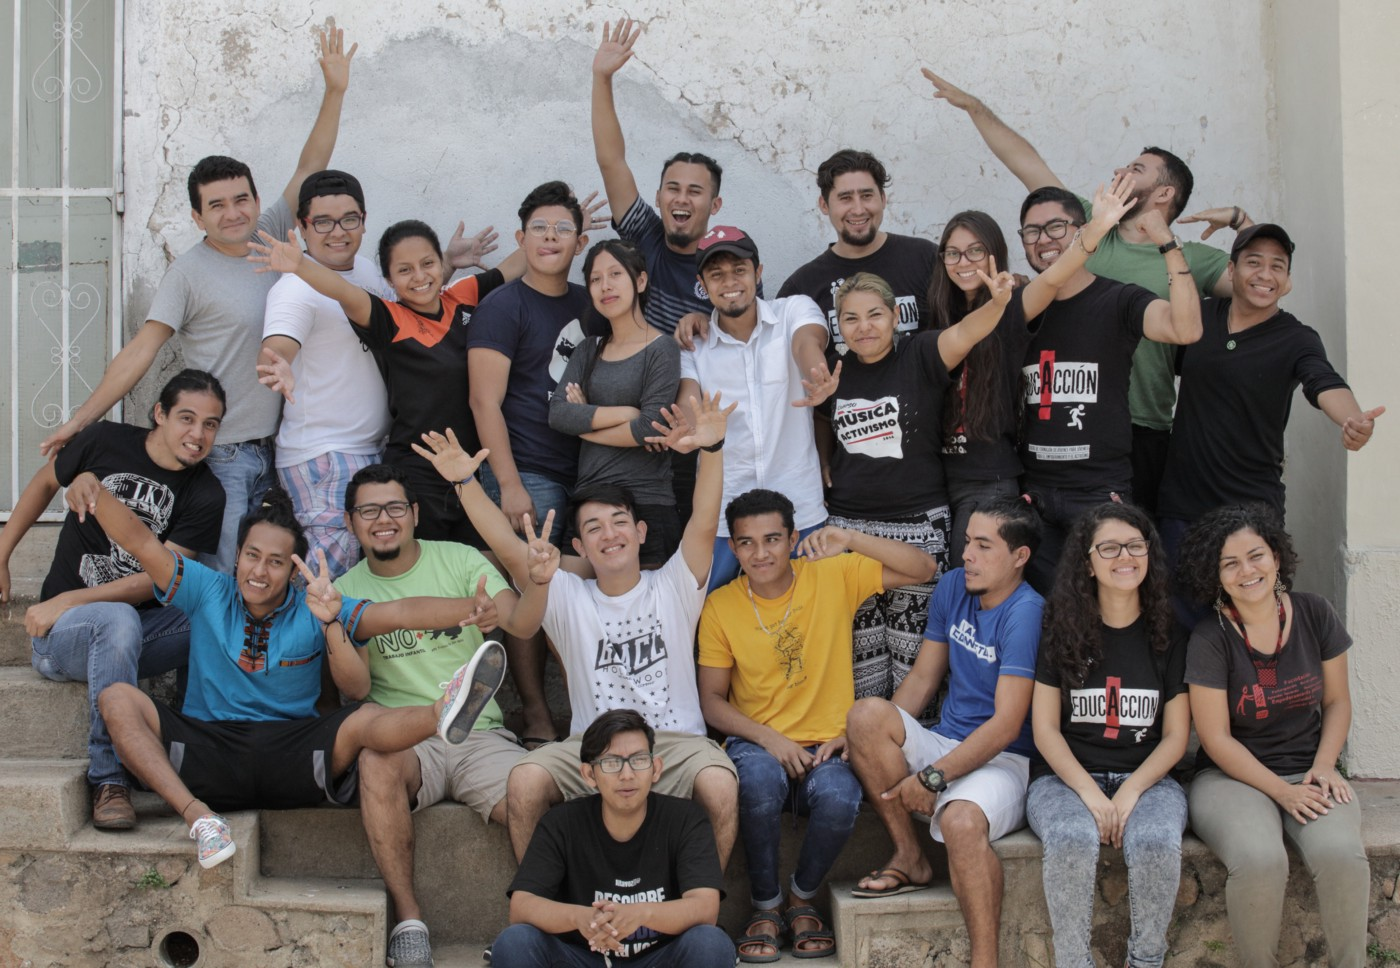 The Global Platform El Salvador organization—a youth activism, campaigning, and training group. Photo: Oscar Leiva/Oxfam